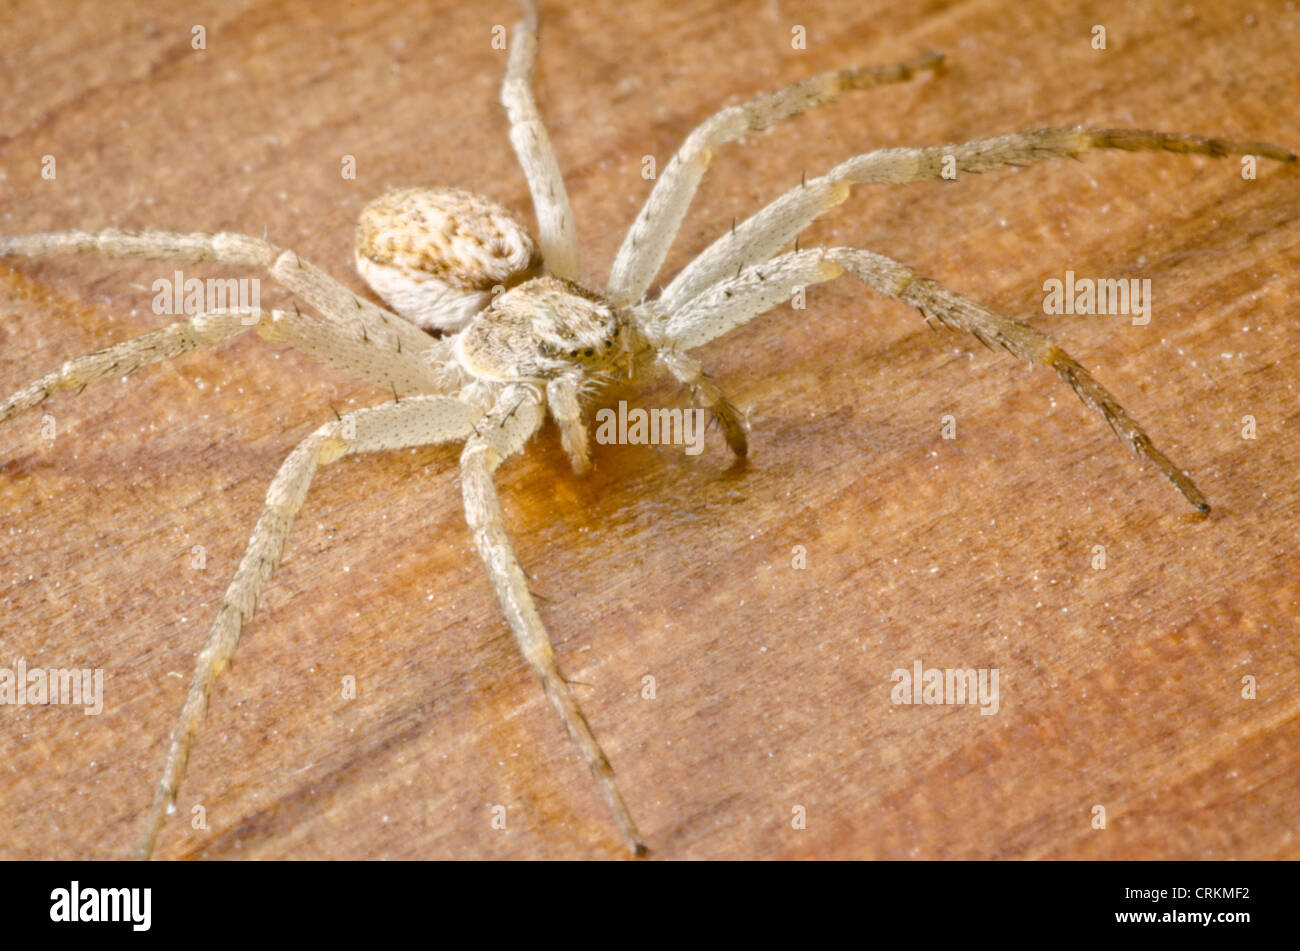 Anyphaena accentuata Buzzing Spider on a wooden floor in a UK house - Stock Image